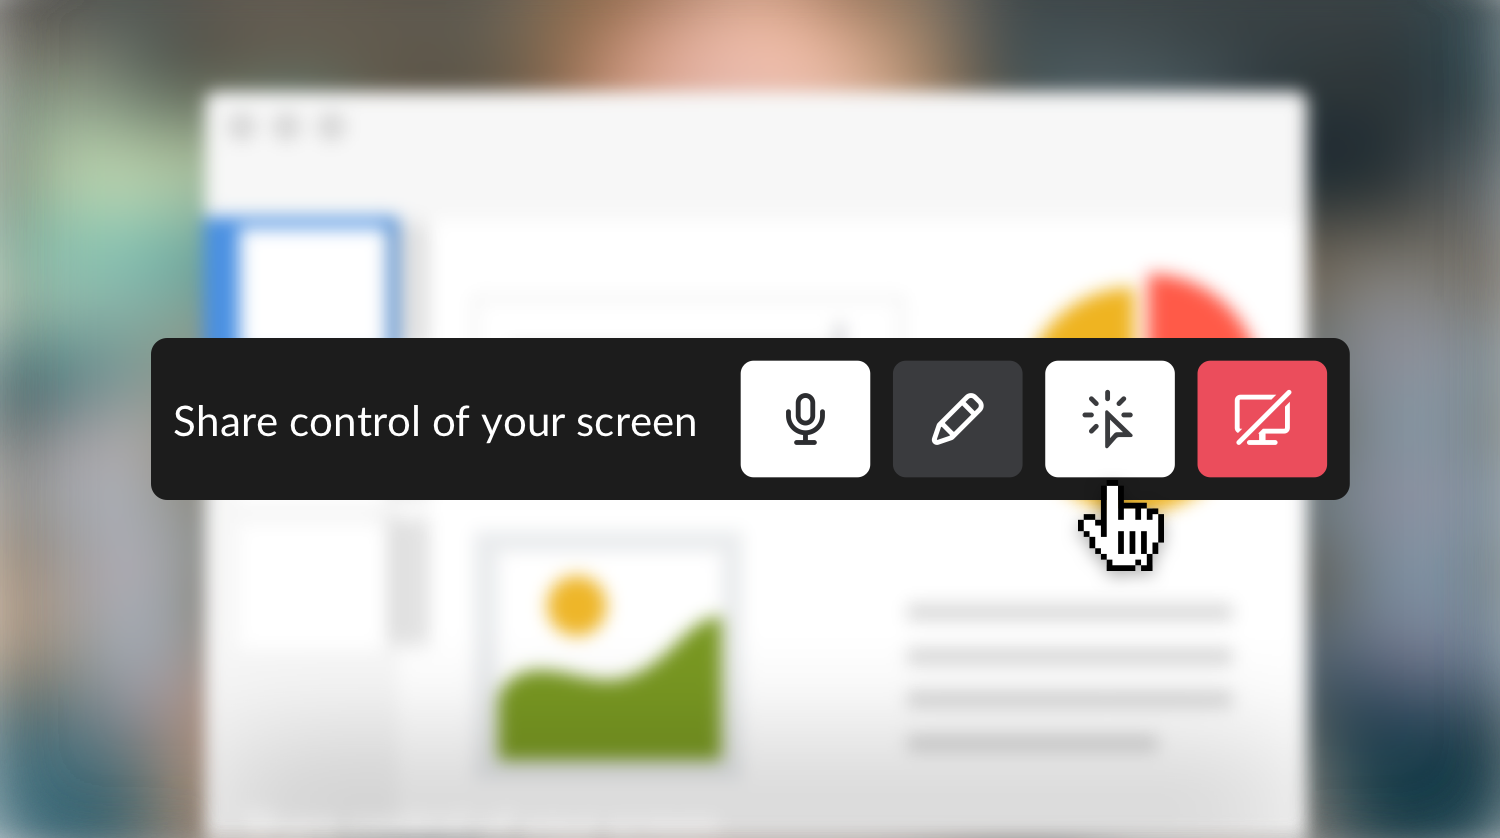 Slack screen sharing will let your coworkers control your